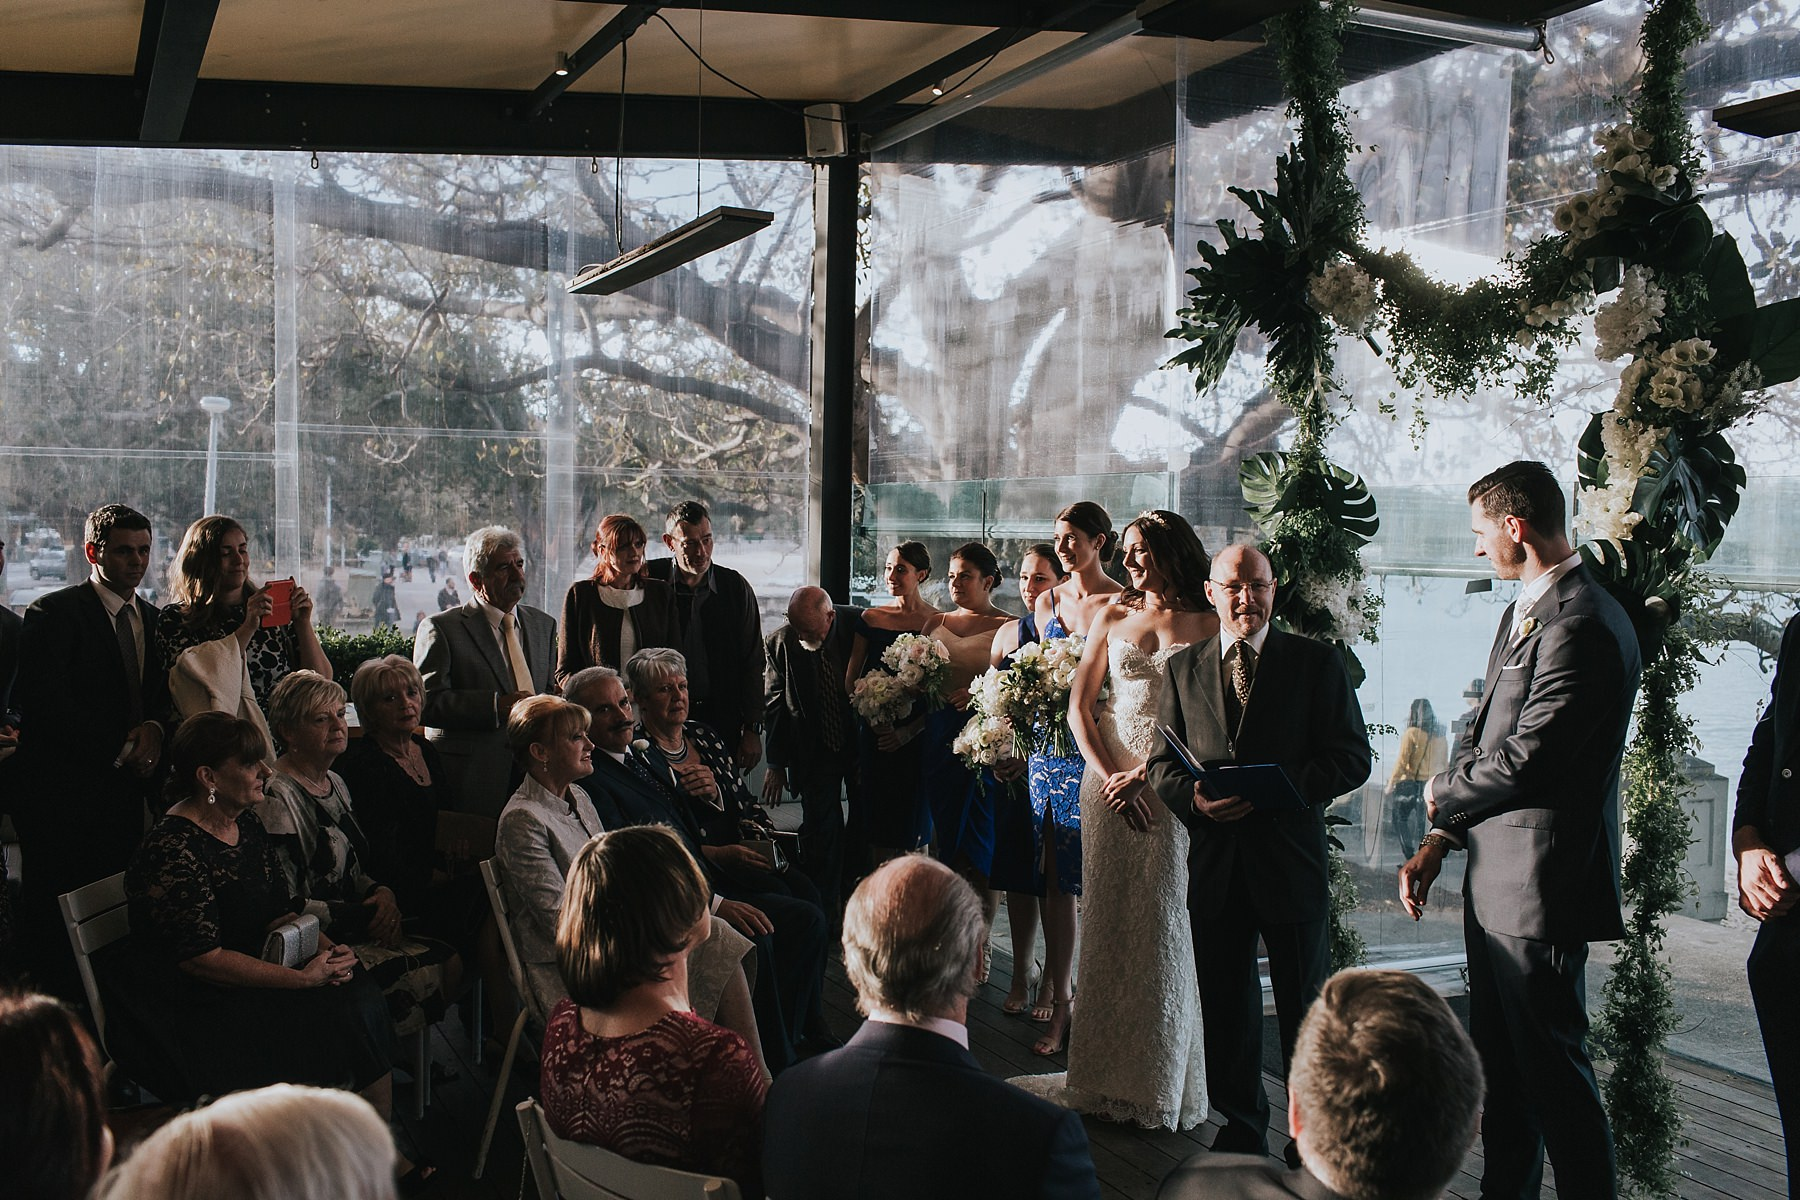 public dining room wedding ceremony photographs